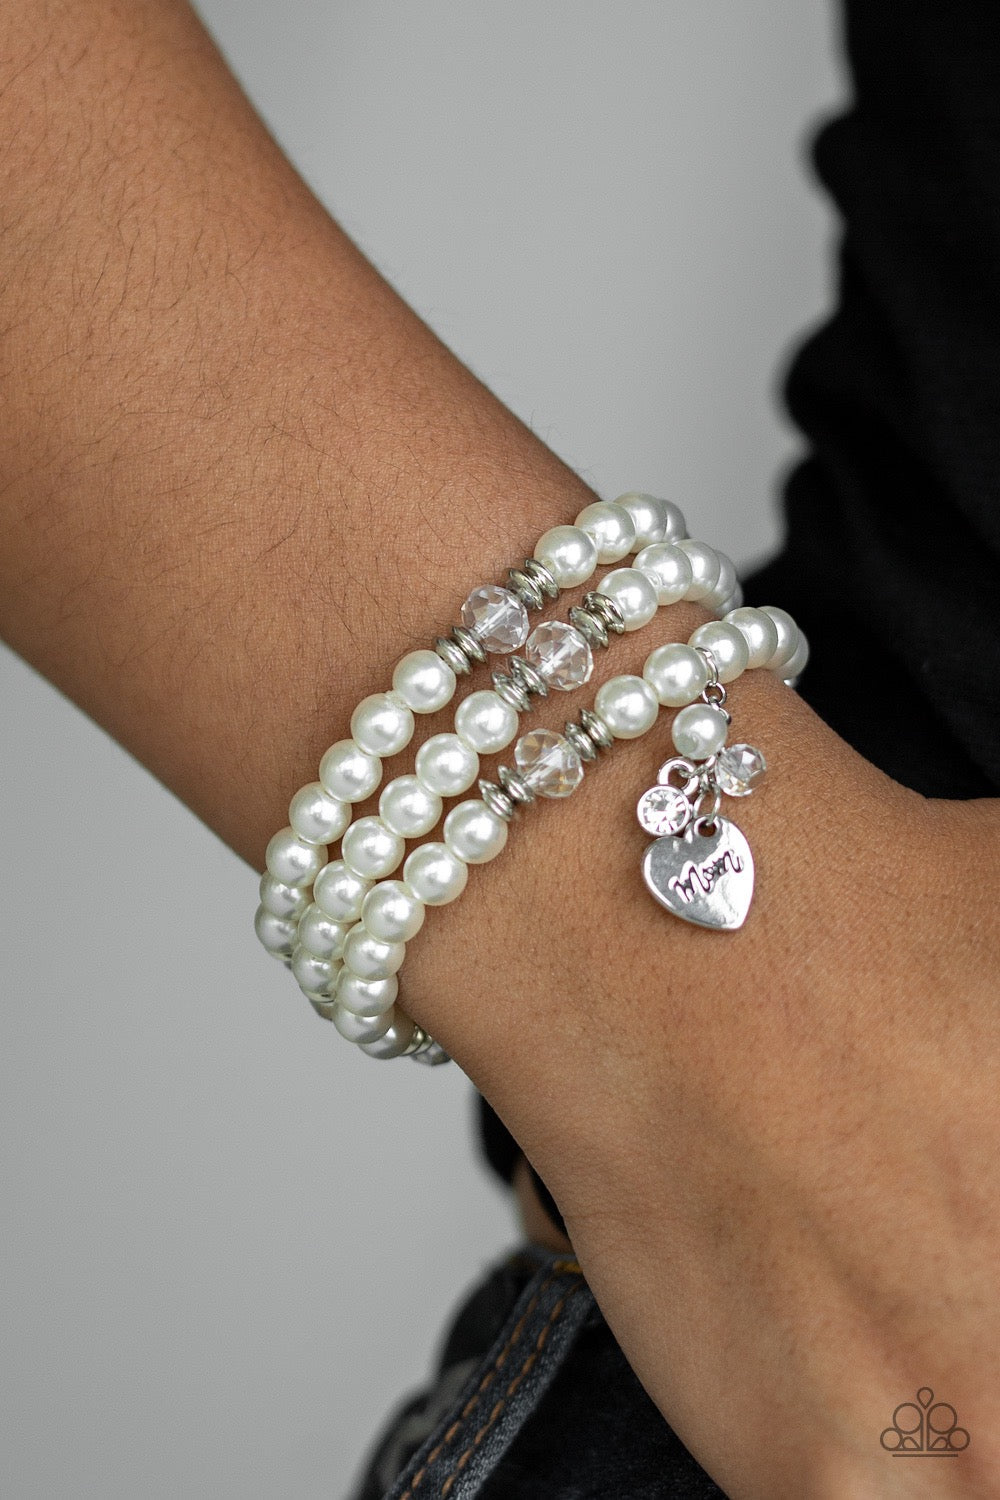 Mom Wow - White Bracelet 1602B